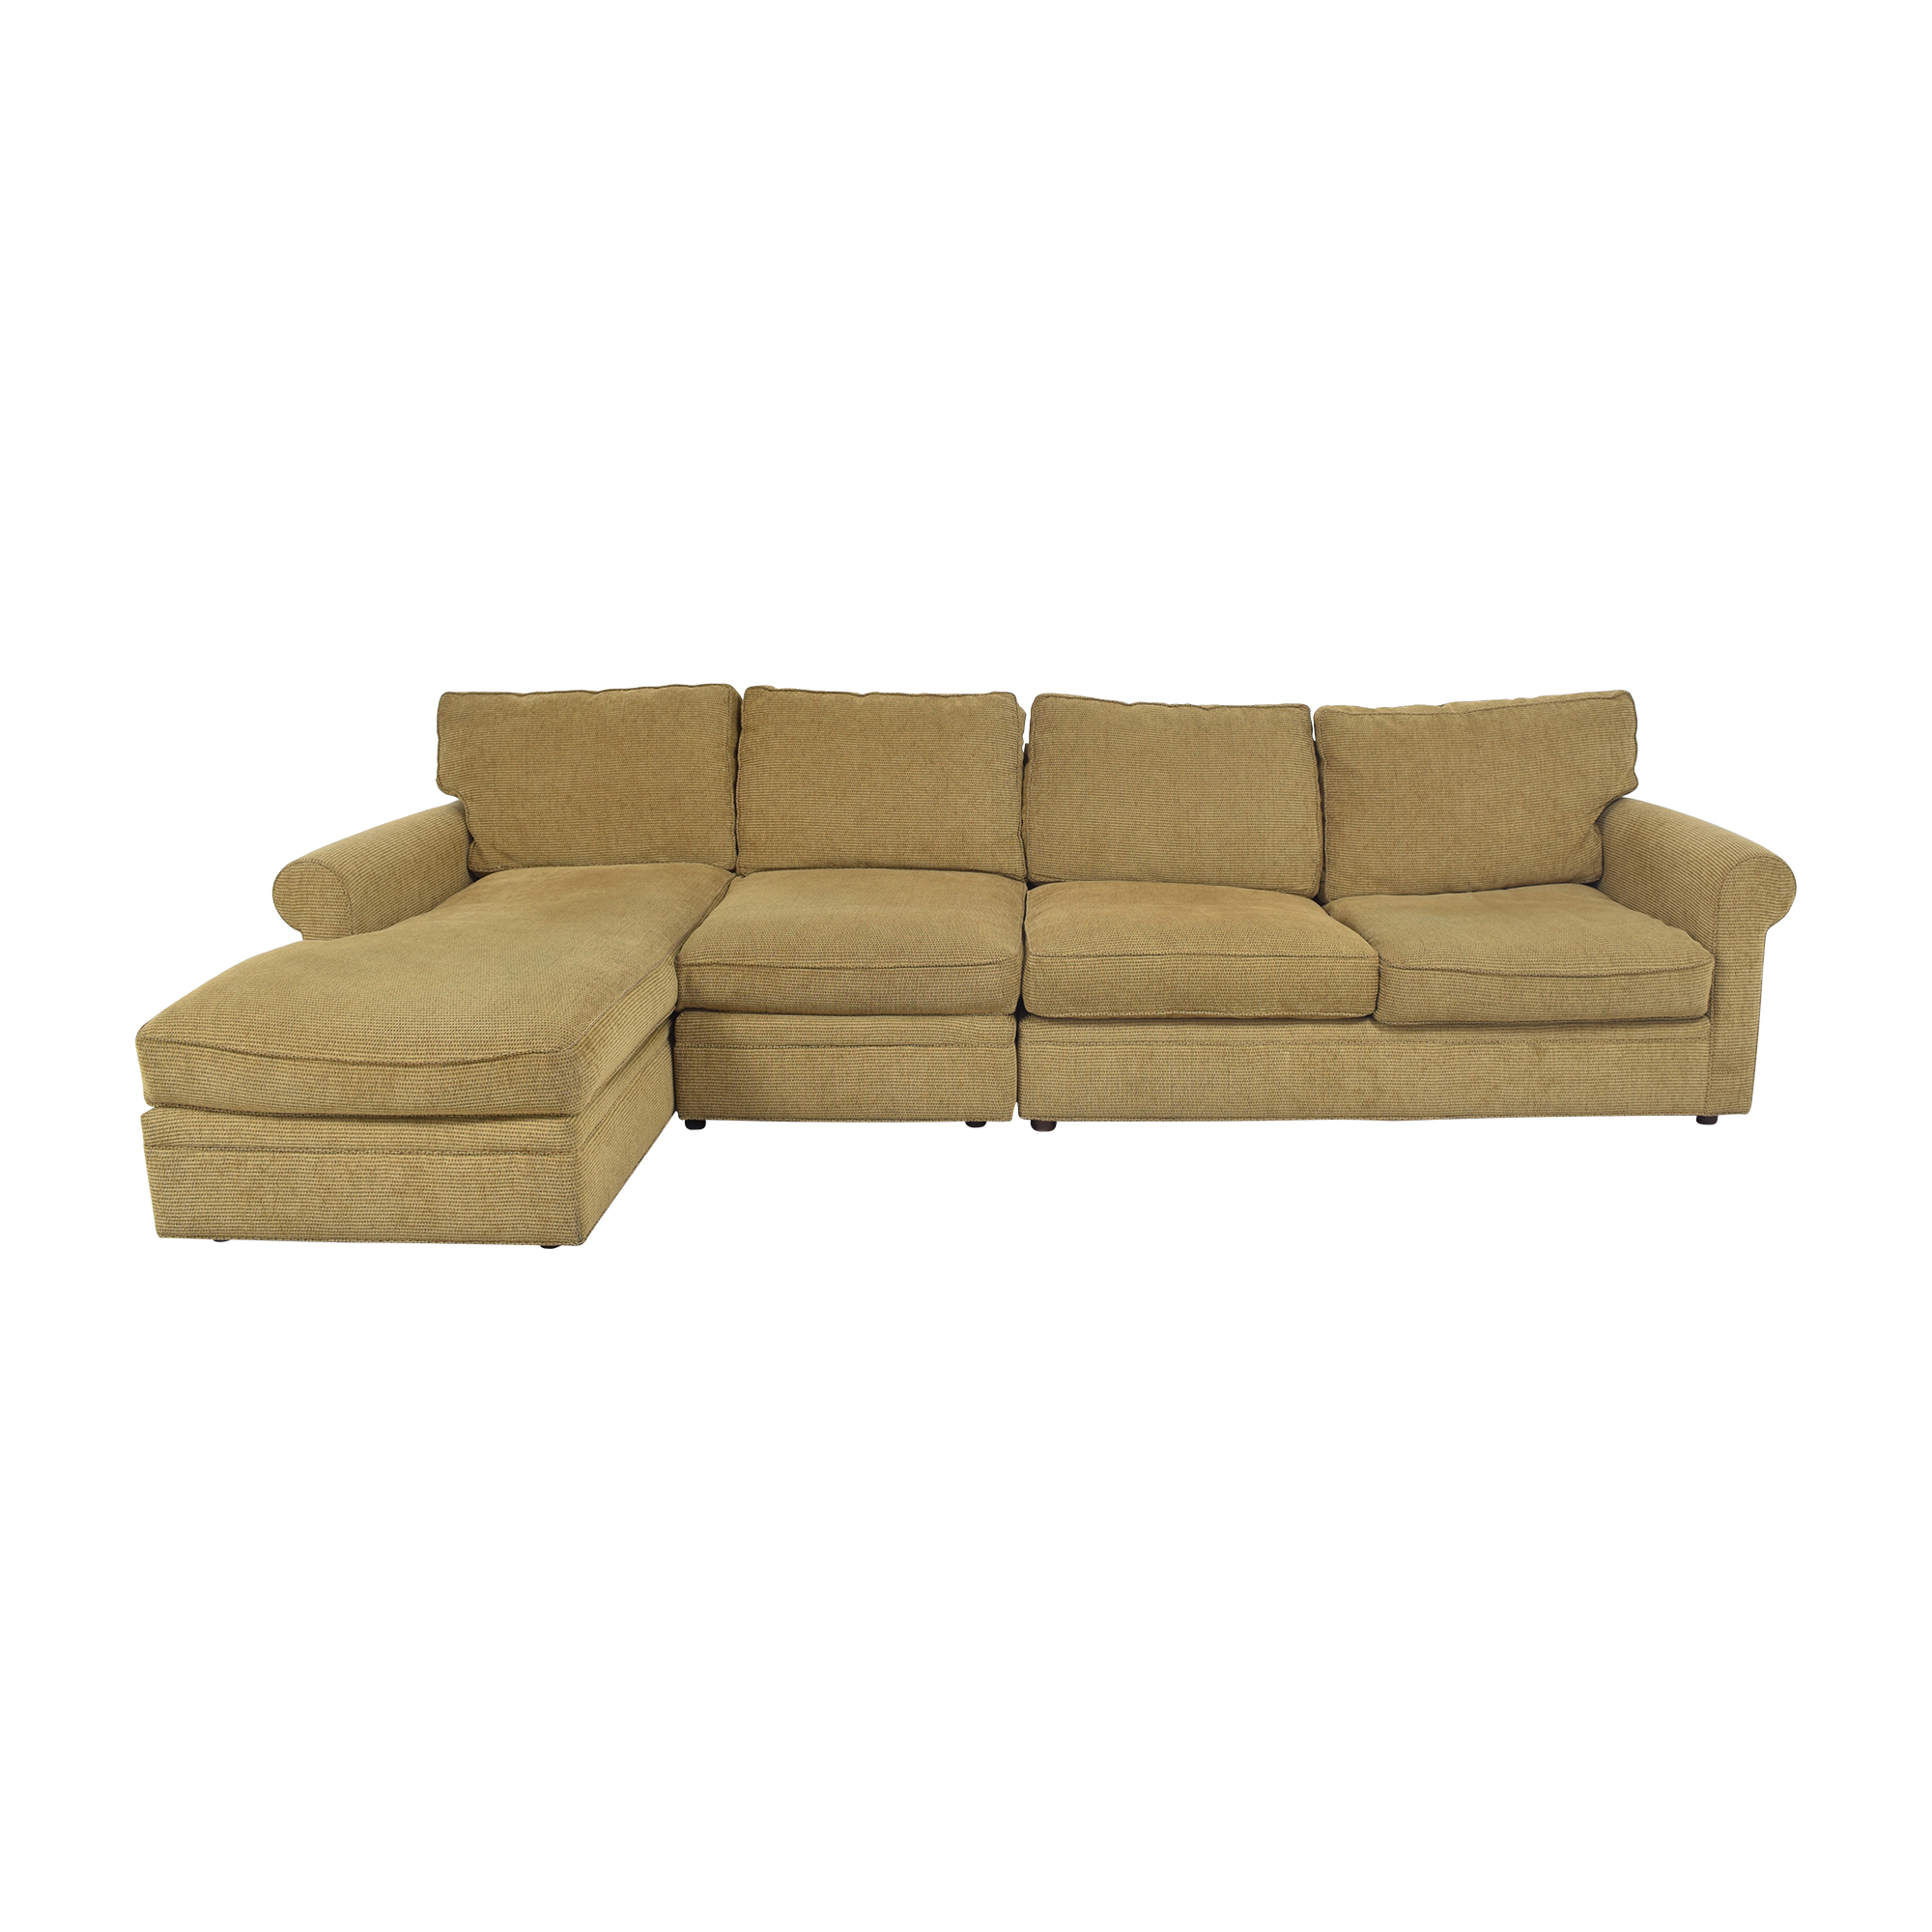 Crate & Barrel Chaise Sectional Sleeper Sofa / Sectionals